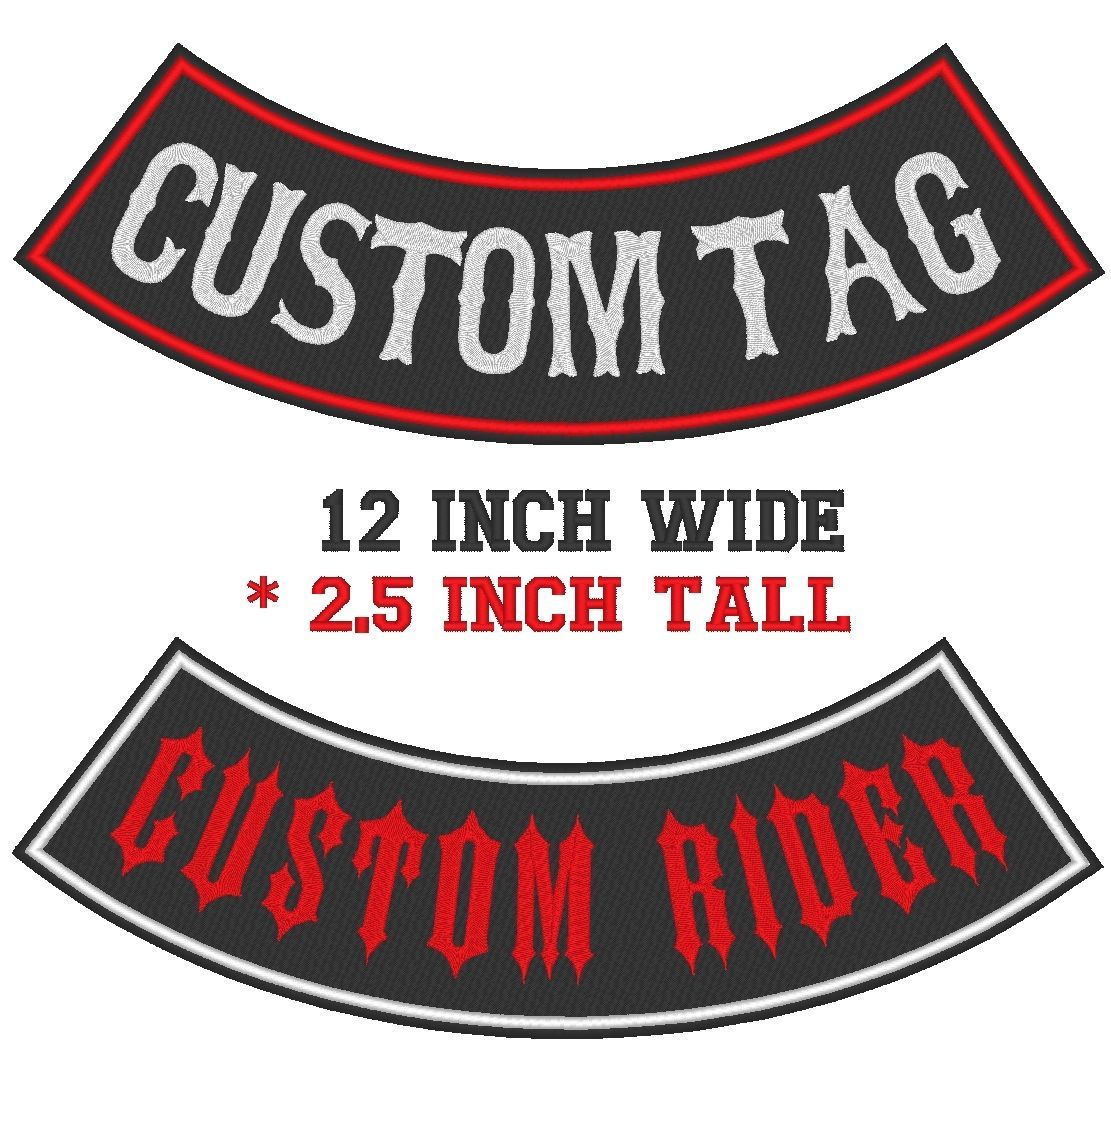 "Custom Faux Leather 12"" Top And Bottom Rocker Biker MC Vest Sew on Patch (B)"